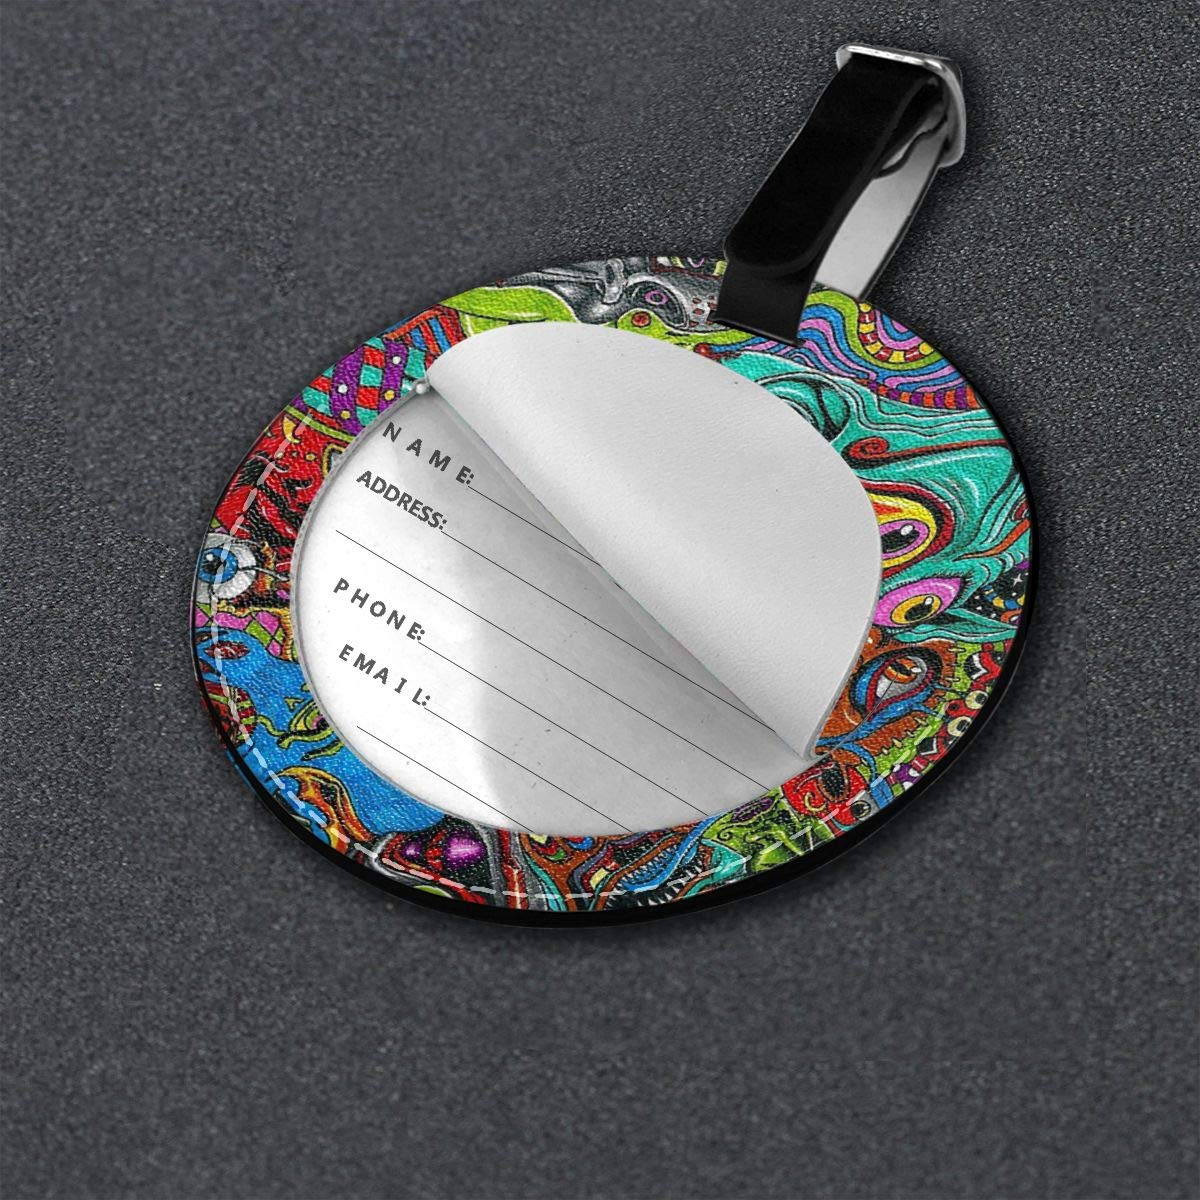 Free-2 Acid Trippy Leaking Smiley Face Luggage Tag 3D Print Leather Travel Bag ID Card